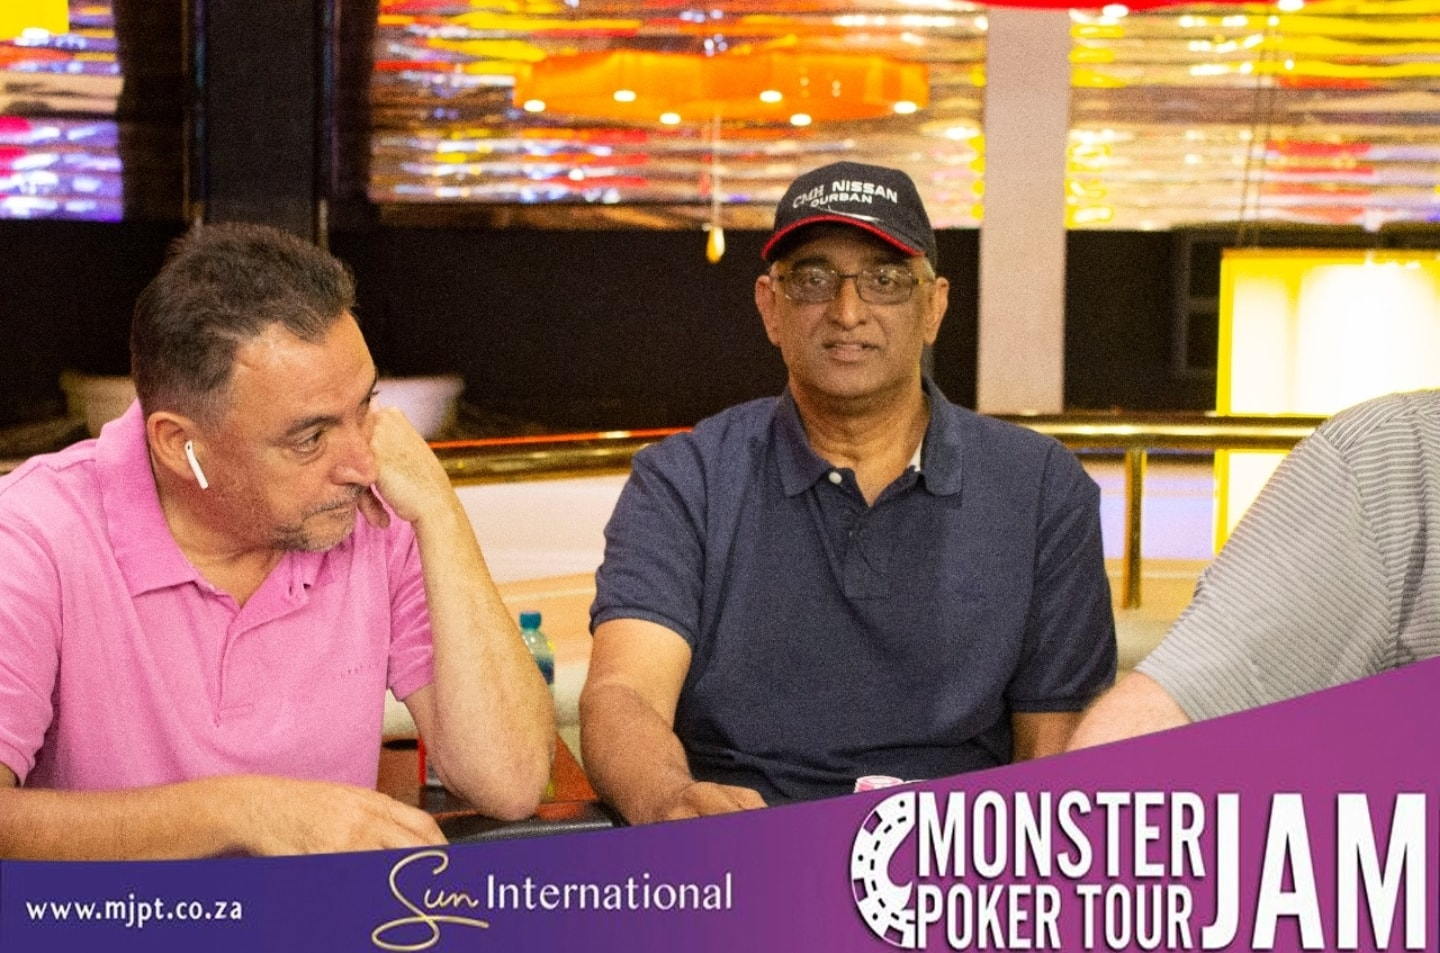 What is Suren's most memorable moment at #MJPT?